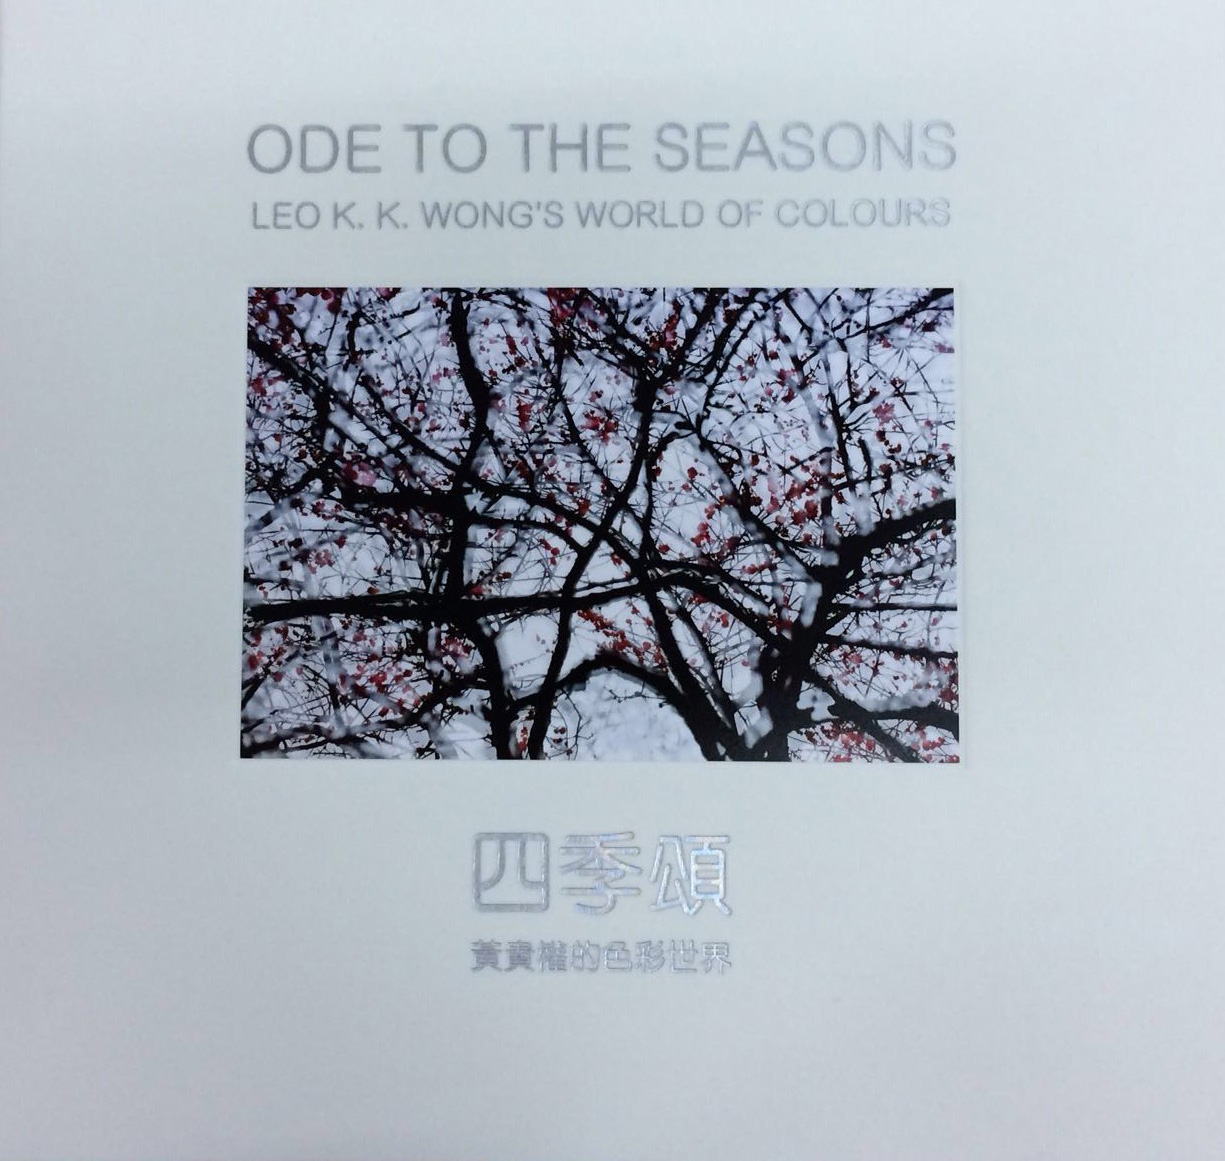 Ode to the Seasons-Leo K.K. Wong's World of Colours